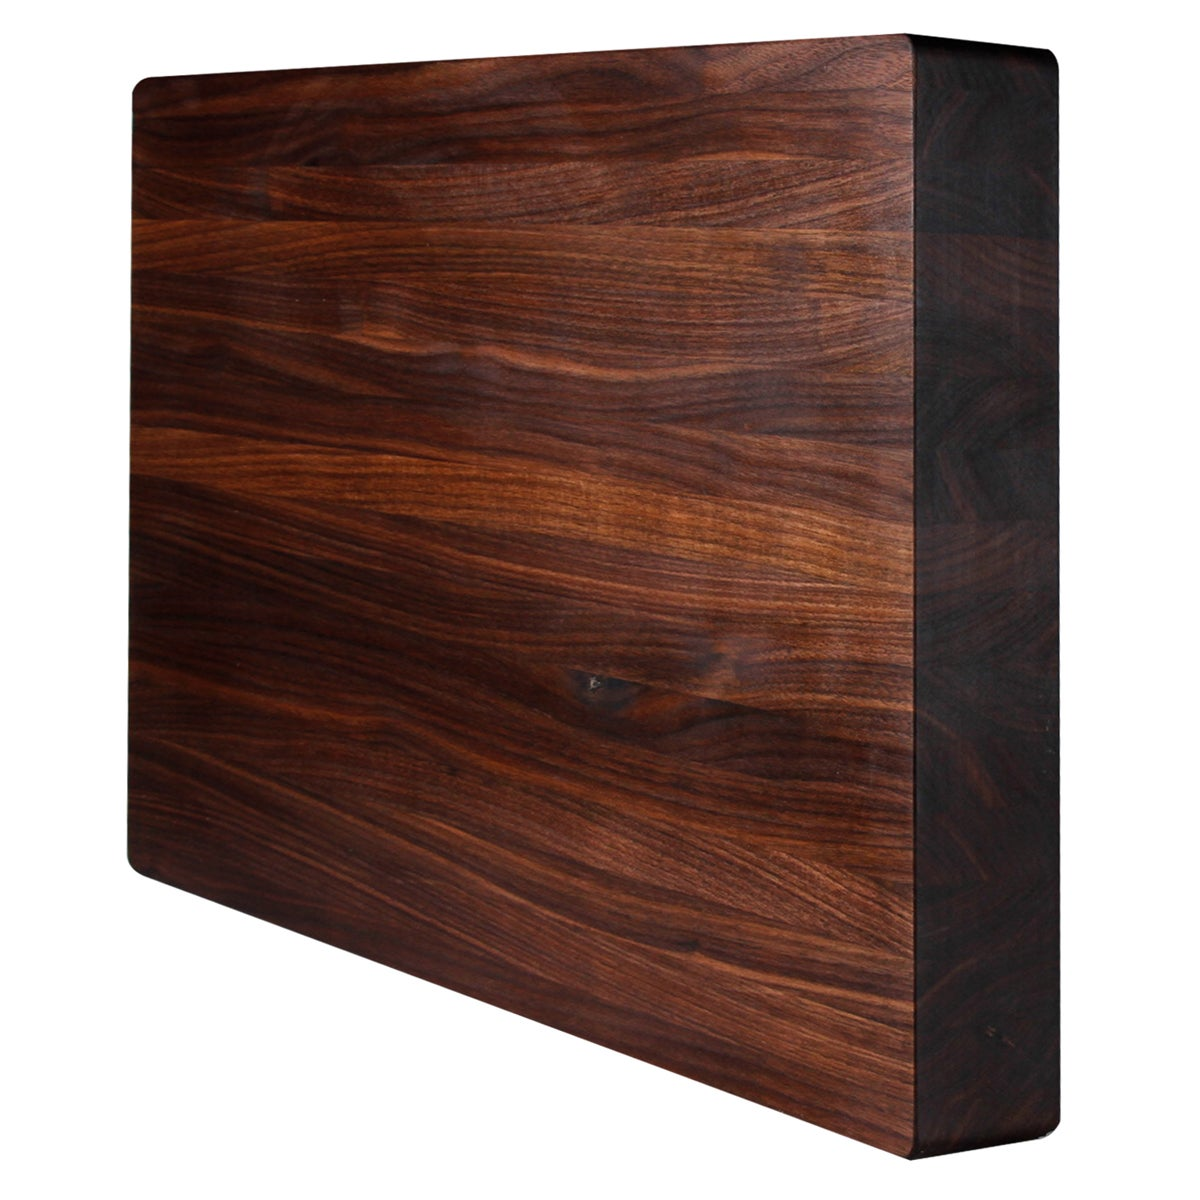 Kobi Michigan Walnut Butcher Block Cutting Board